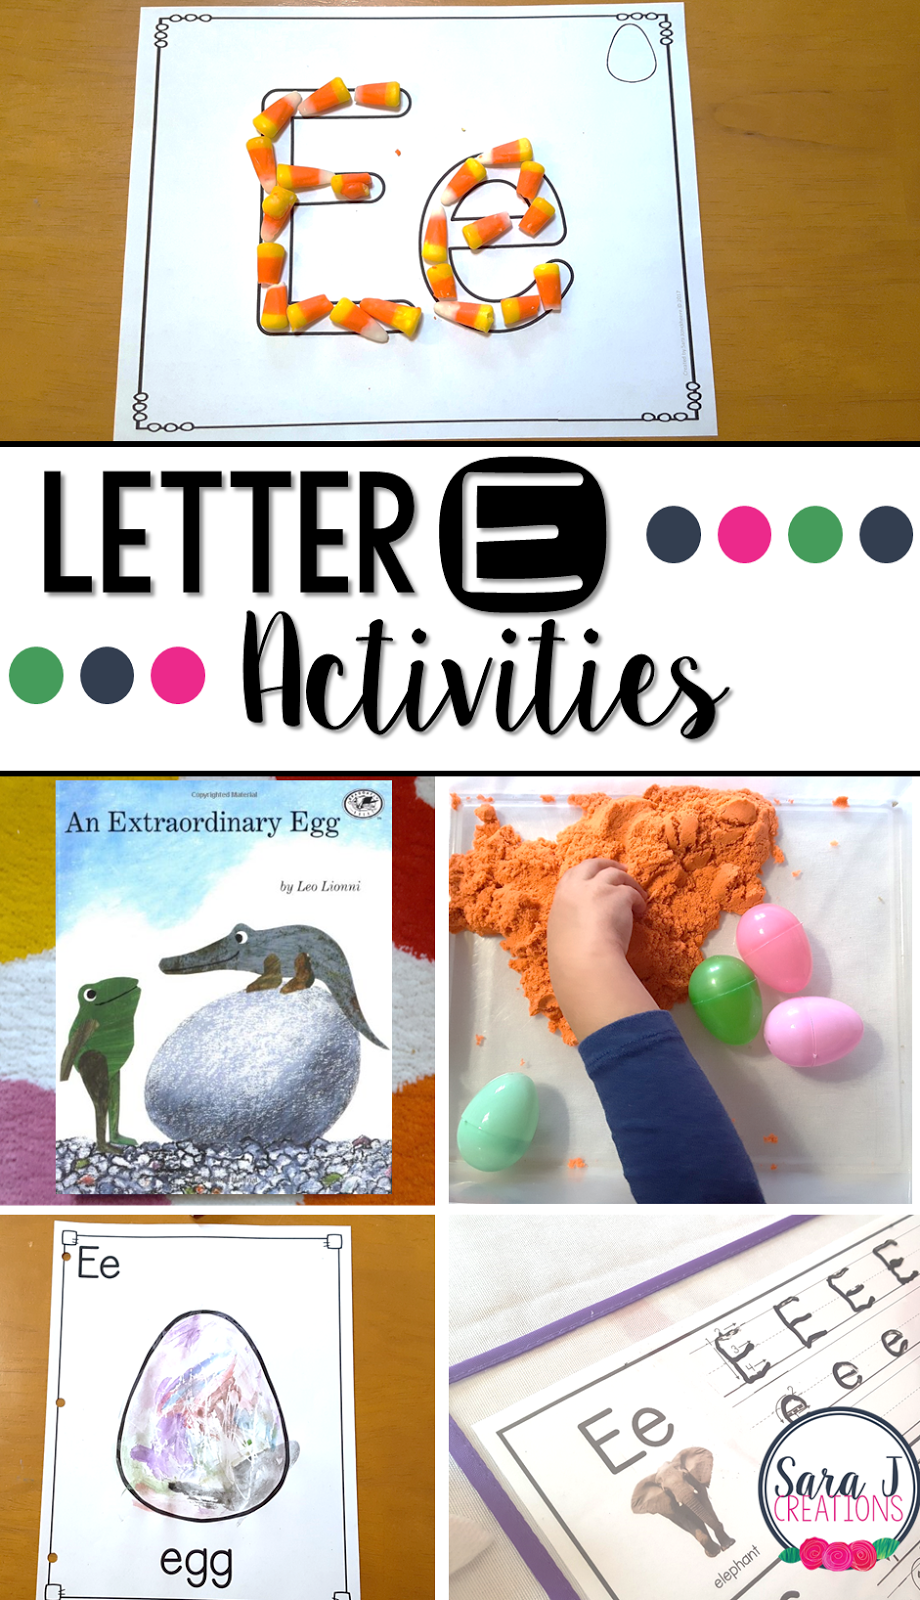 Letter E Activities that would be perfect for preschool or kindergarten. Sensory, art, gross motor, literacy and alphabet practice all rolled into Letter E fun.